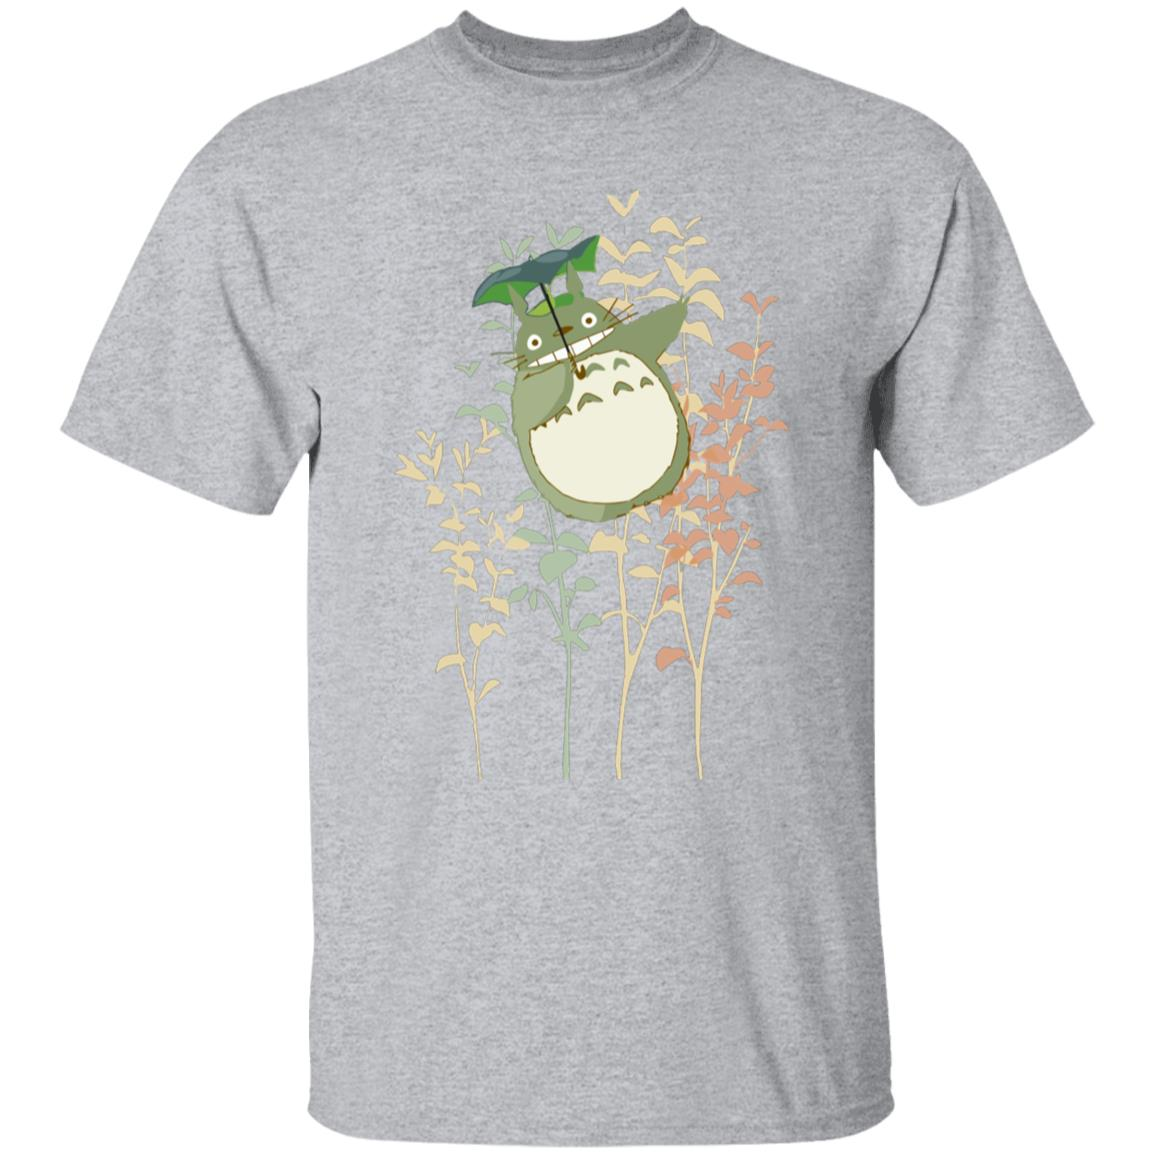 My Neighbor Totoro – Totoro and Umbrella T Shirt